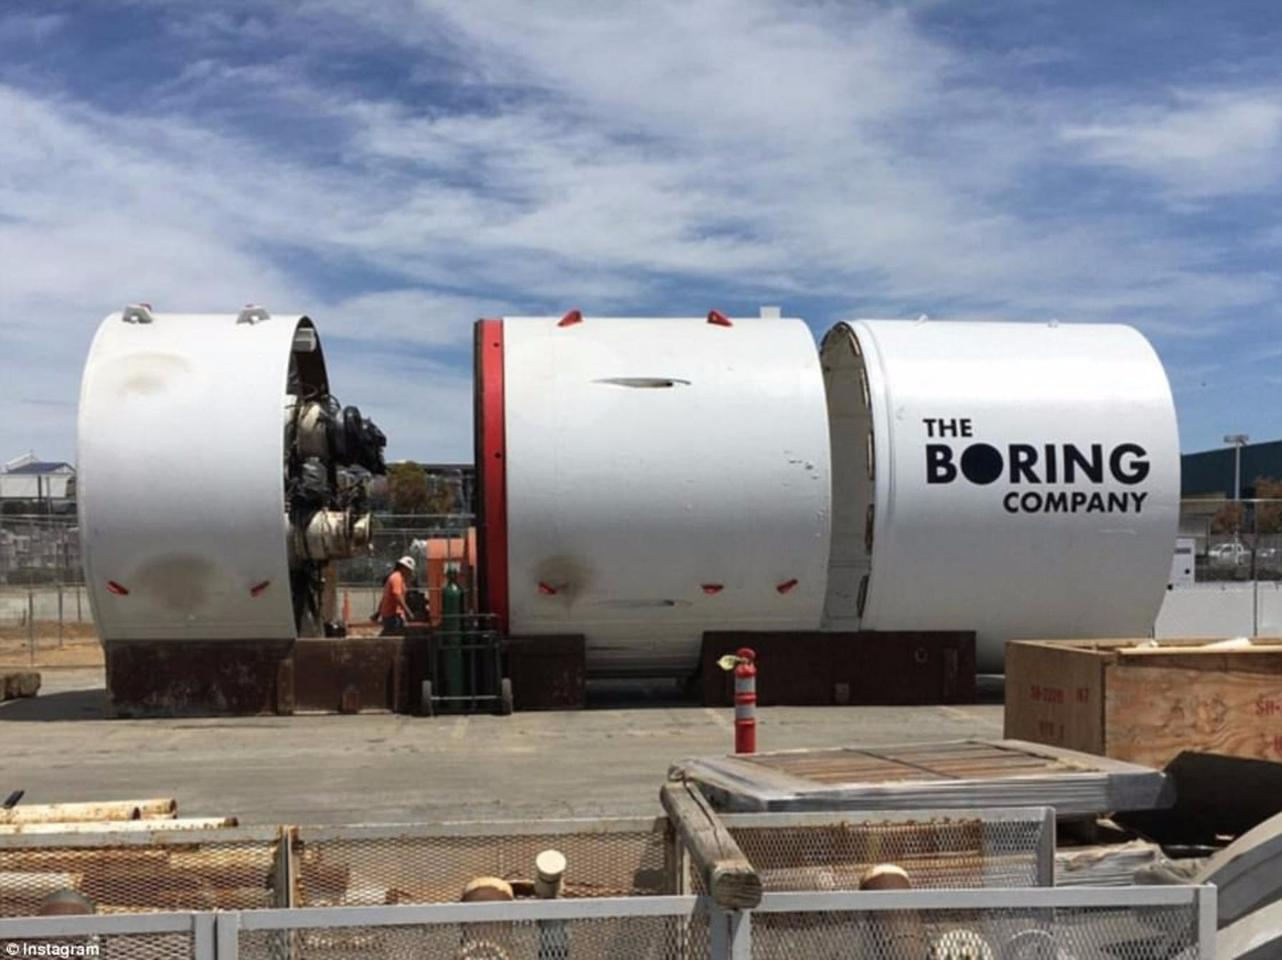 The Boring Company aims to make tunneling more cheaper and more efficient